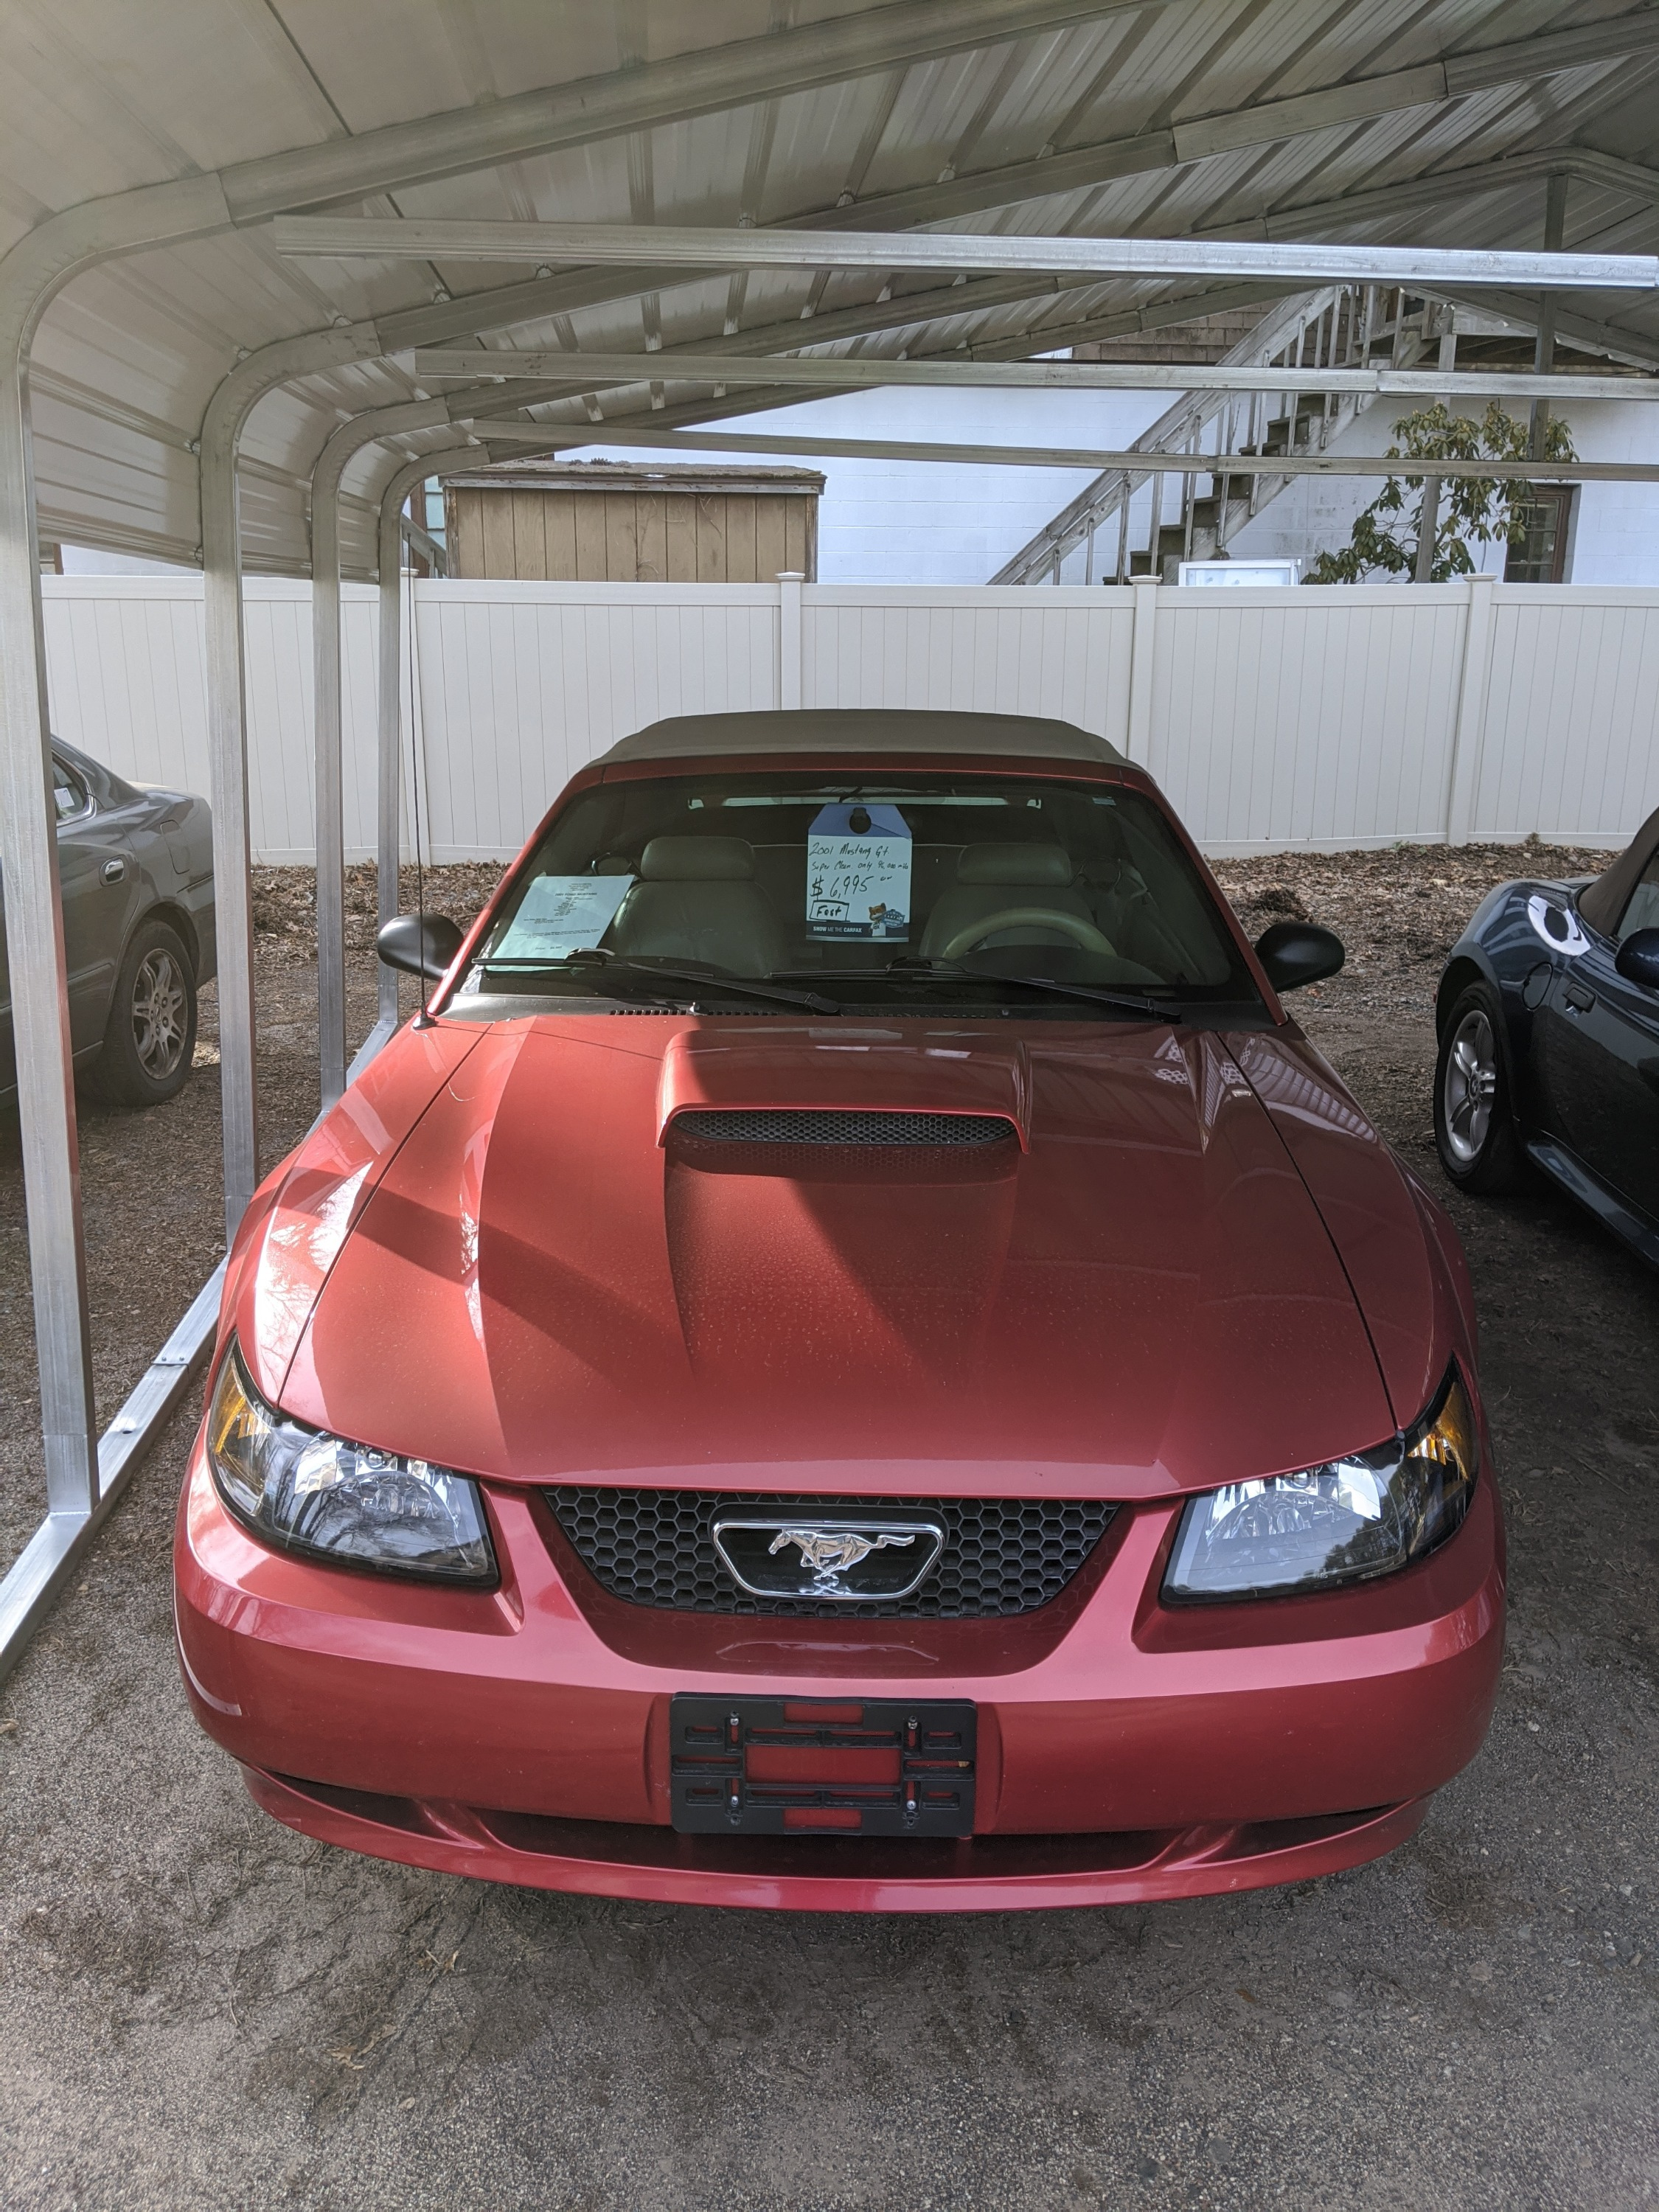 2001 Ford Mustang with 95,650 miles